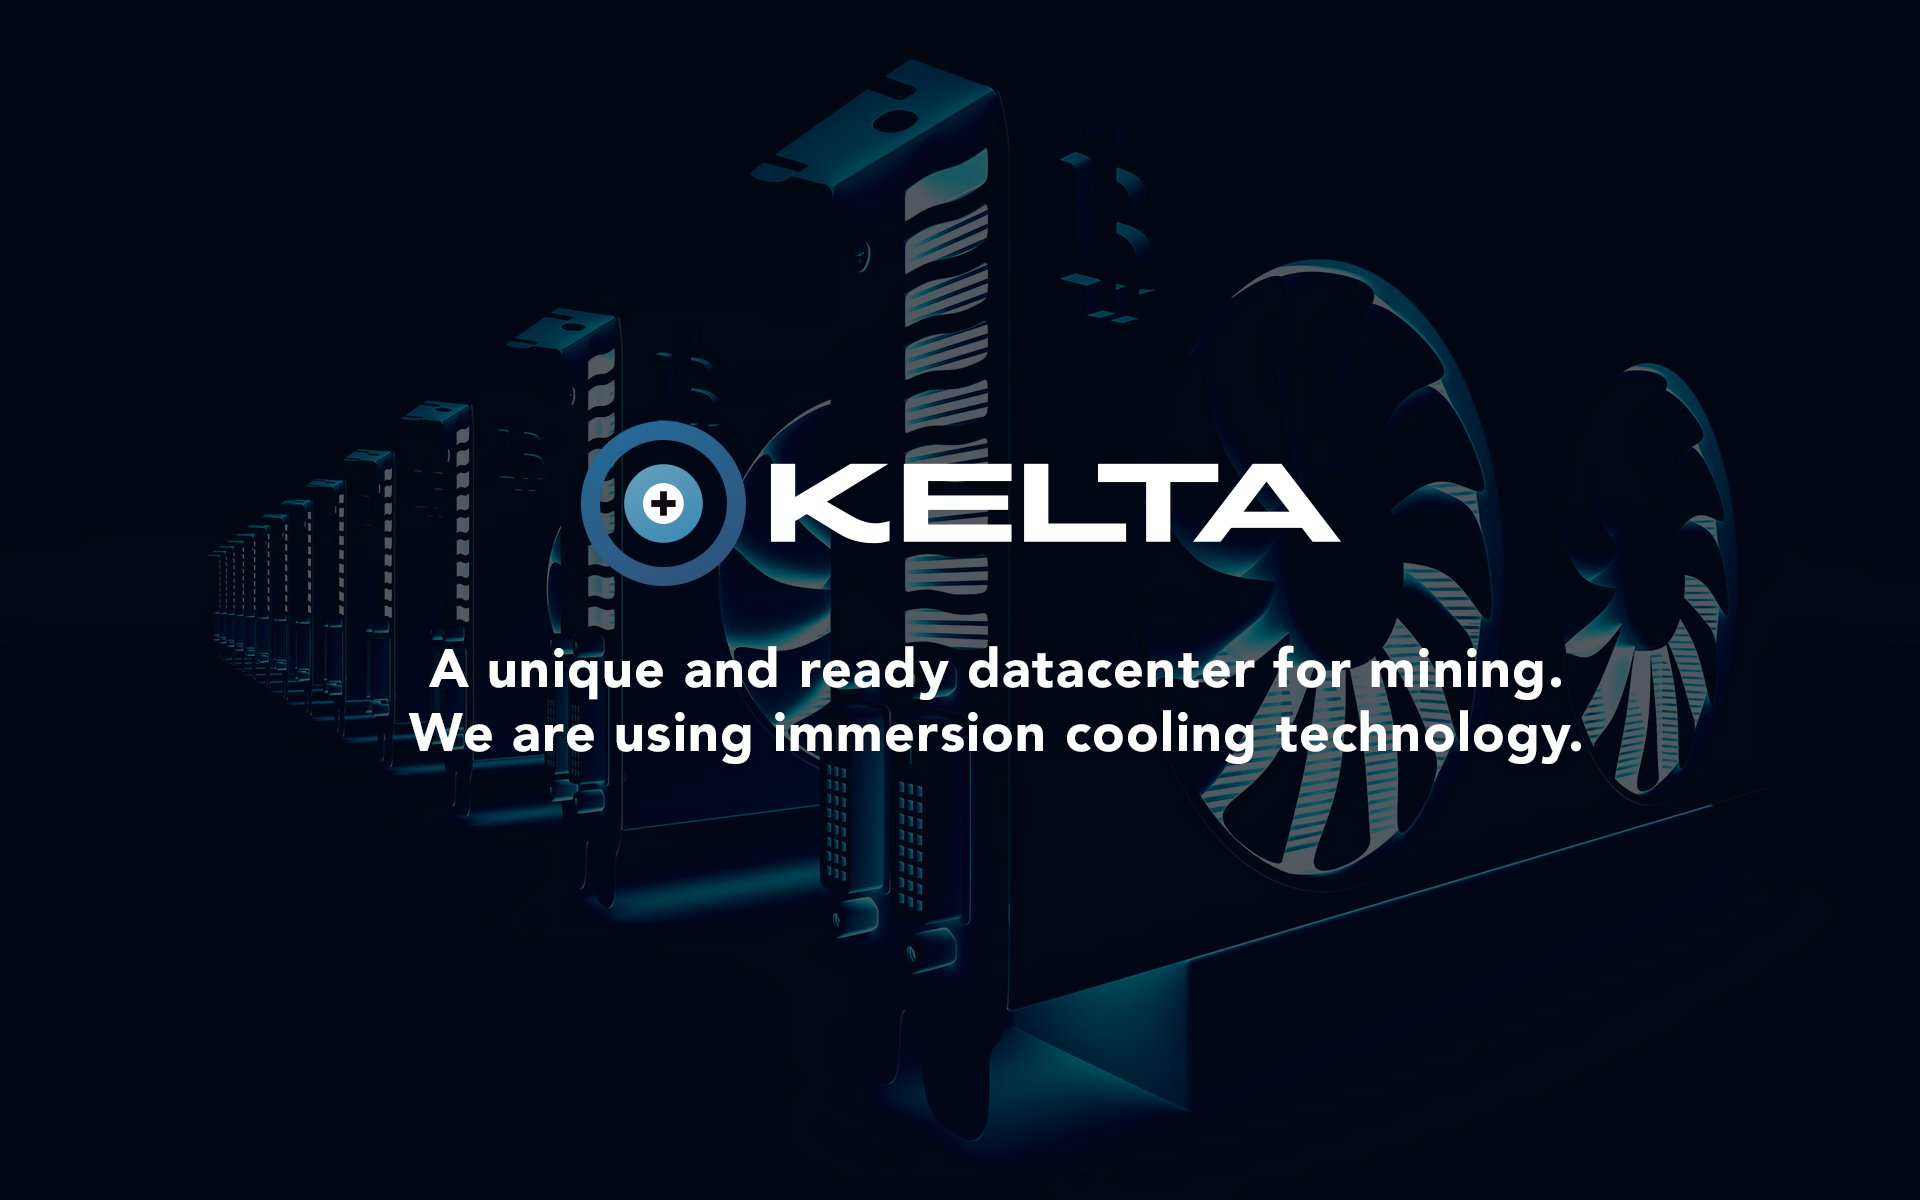 Kelta's Pre-ICO Is Over. The Main Token Sale Started on April 2